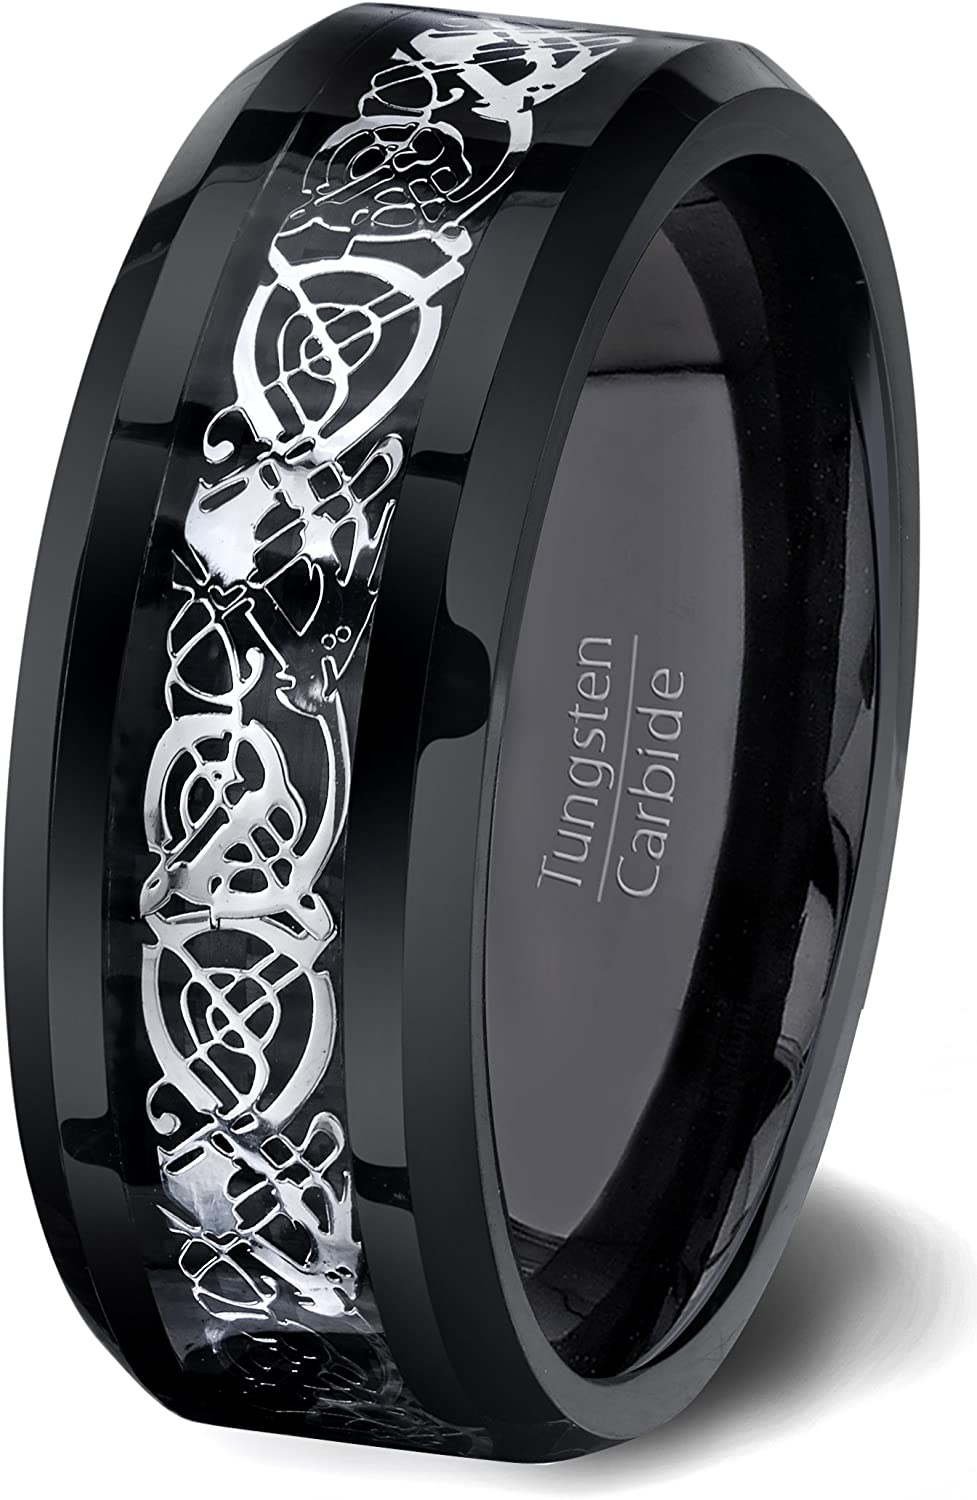 Duke Collections Mens Wedding Band Black Tungsten Ring High Polished Celtic Dragon Design Beveled Edge 8mm Comfort Fit